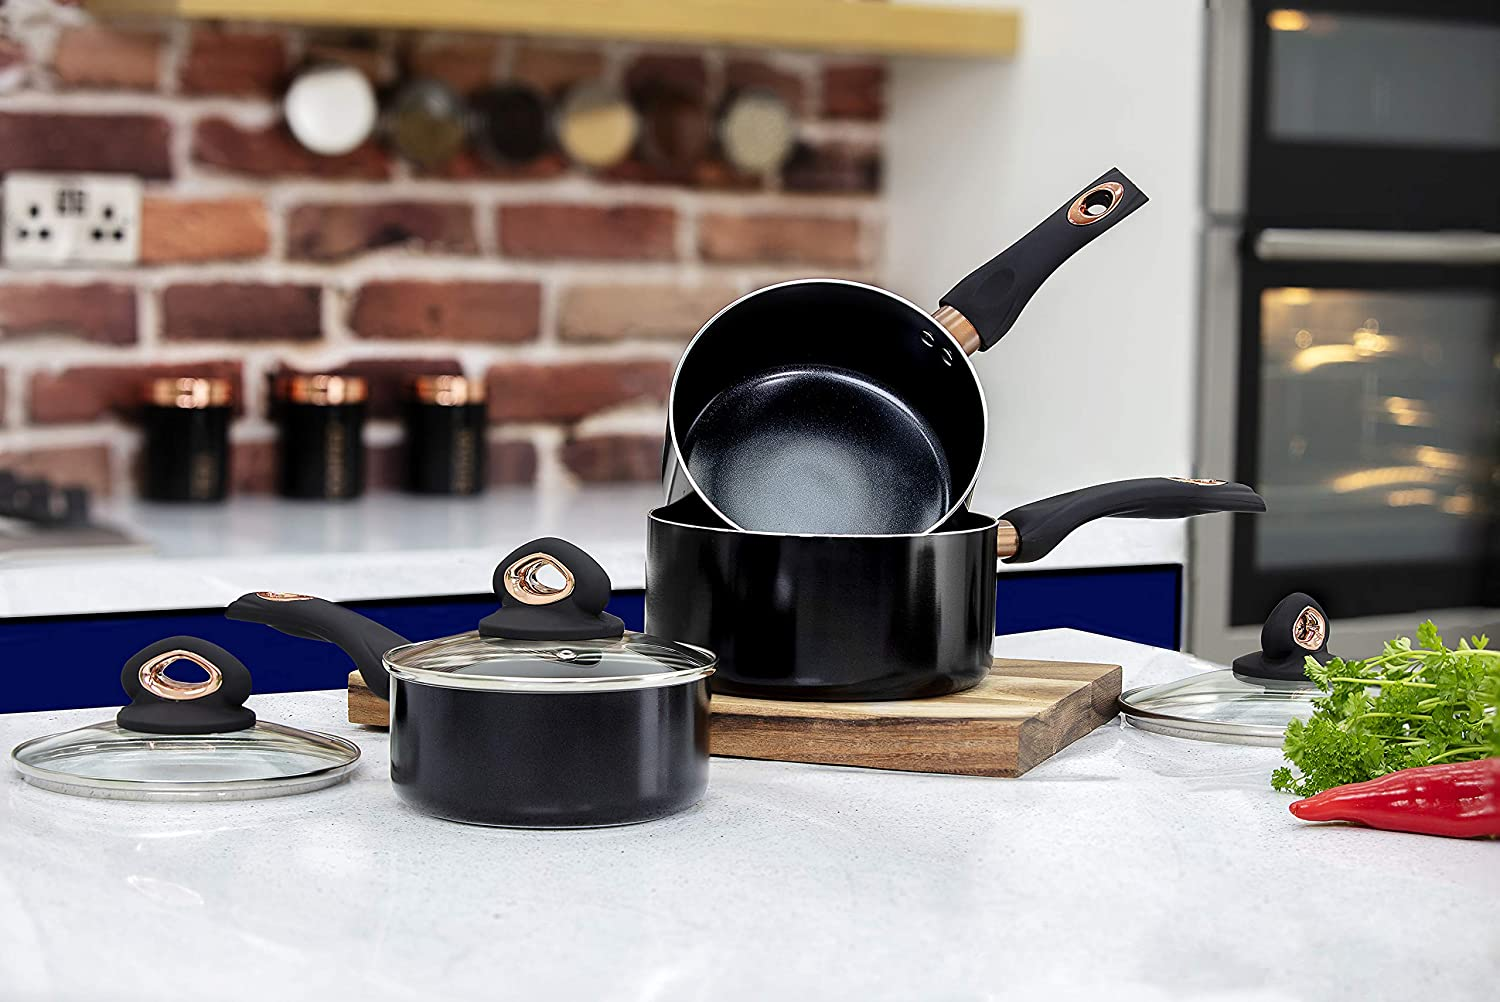 Cerasure Non Stick Coating Tower T800131 3 Piece Saucepan Set 16cm 18cm 20cm With Bakelite Handles Black And Rose Gold Home Kitchen Cooking Dining